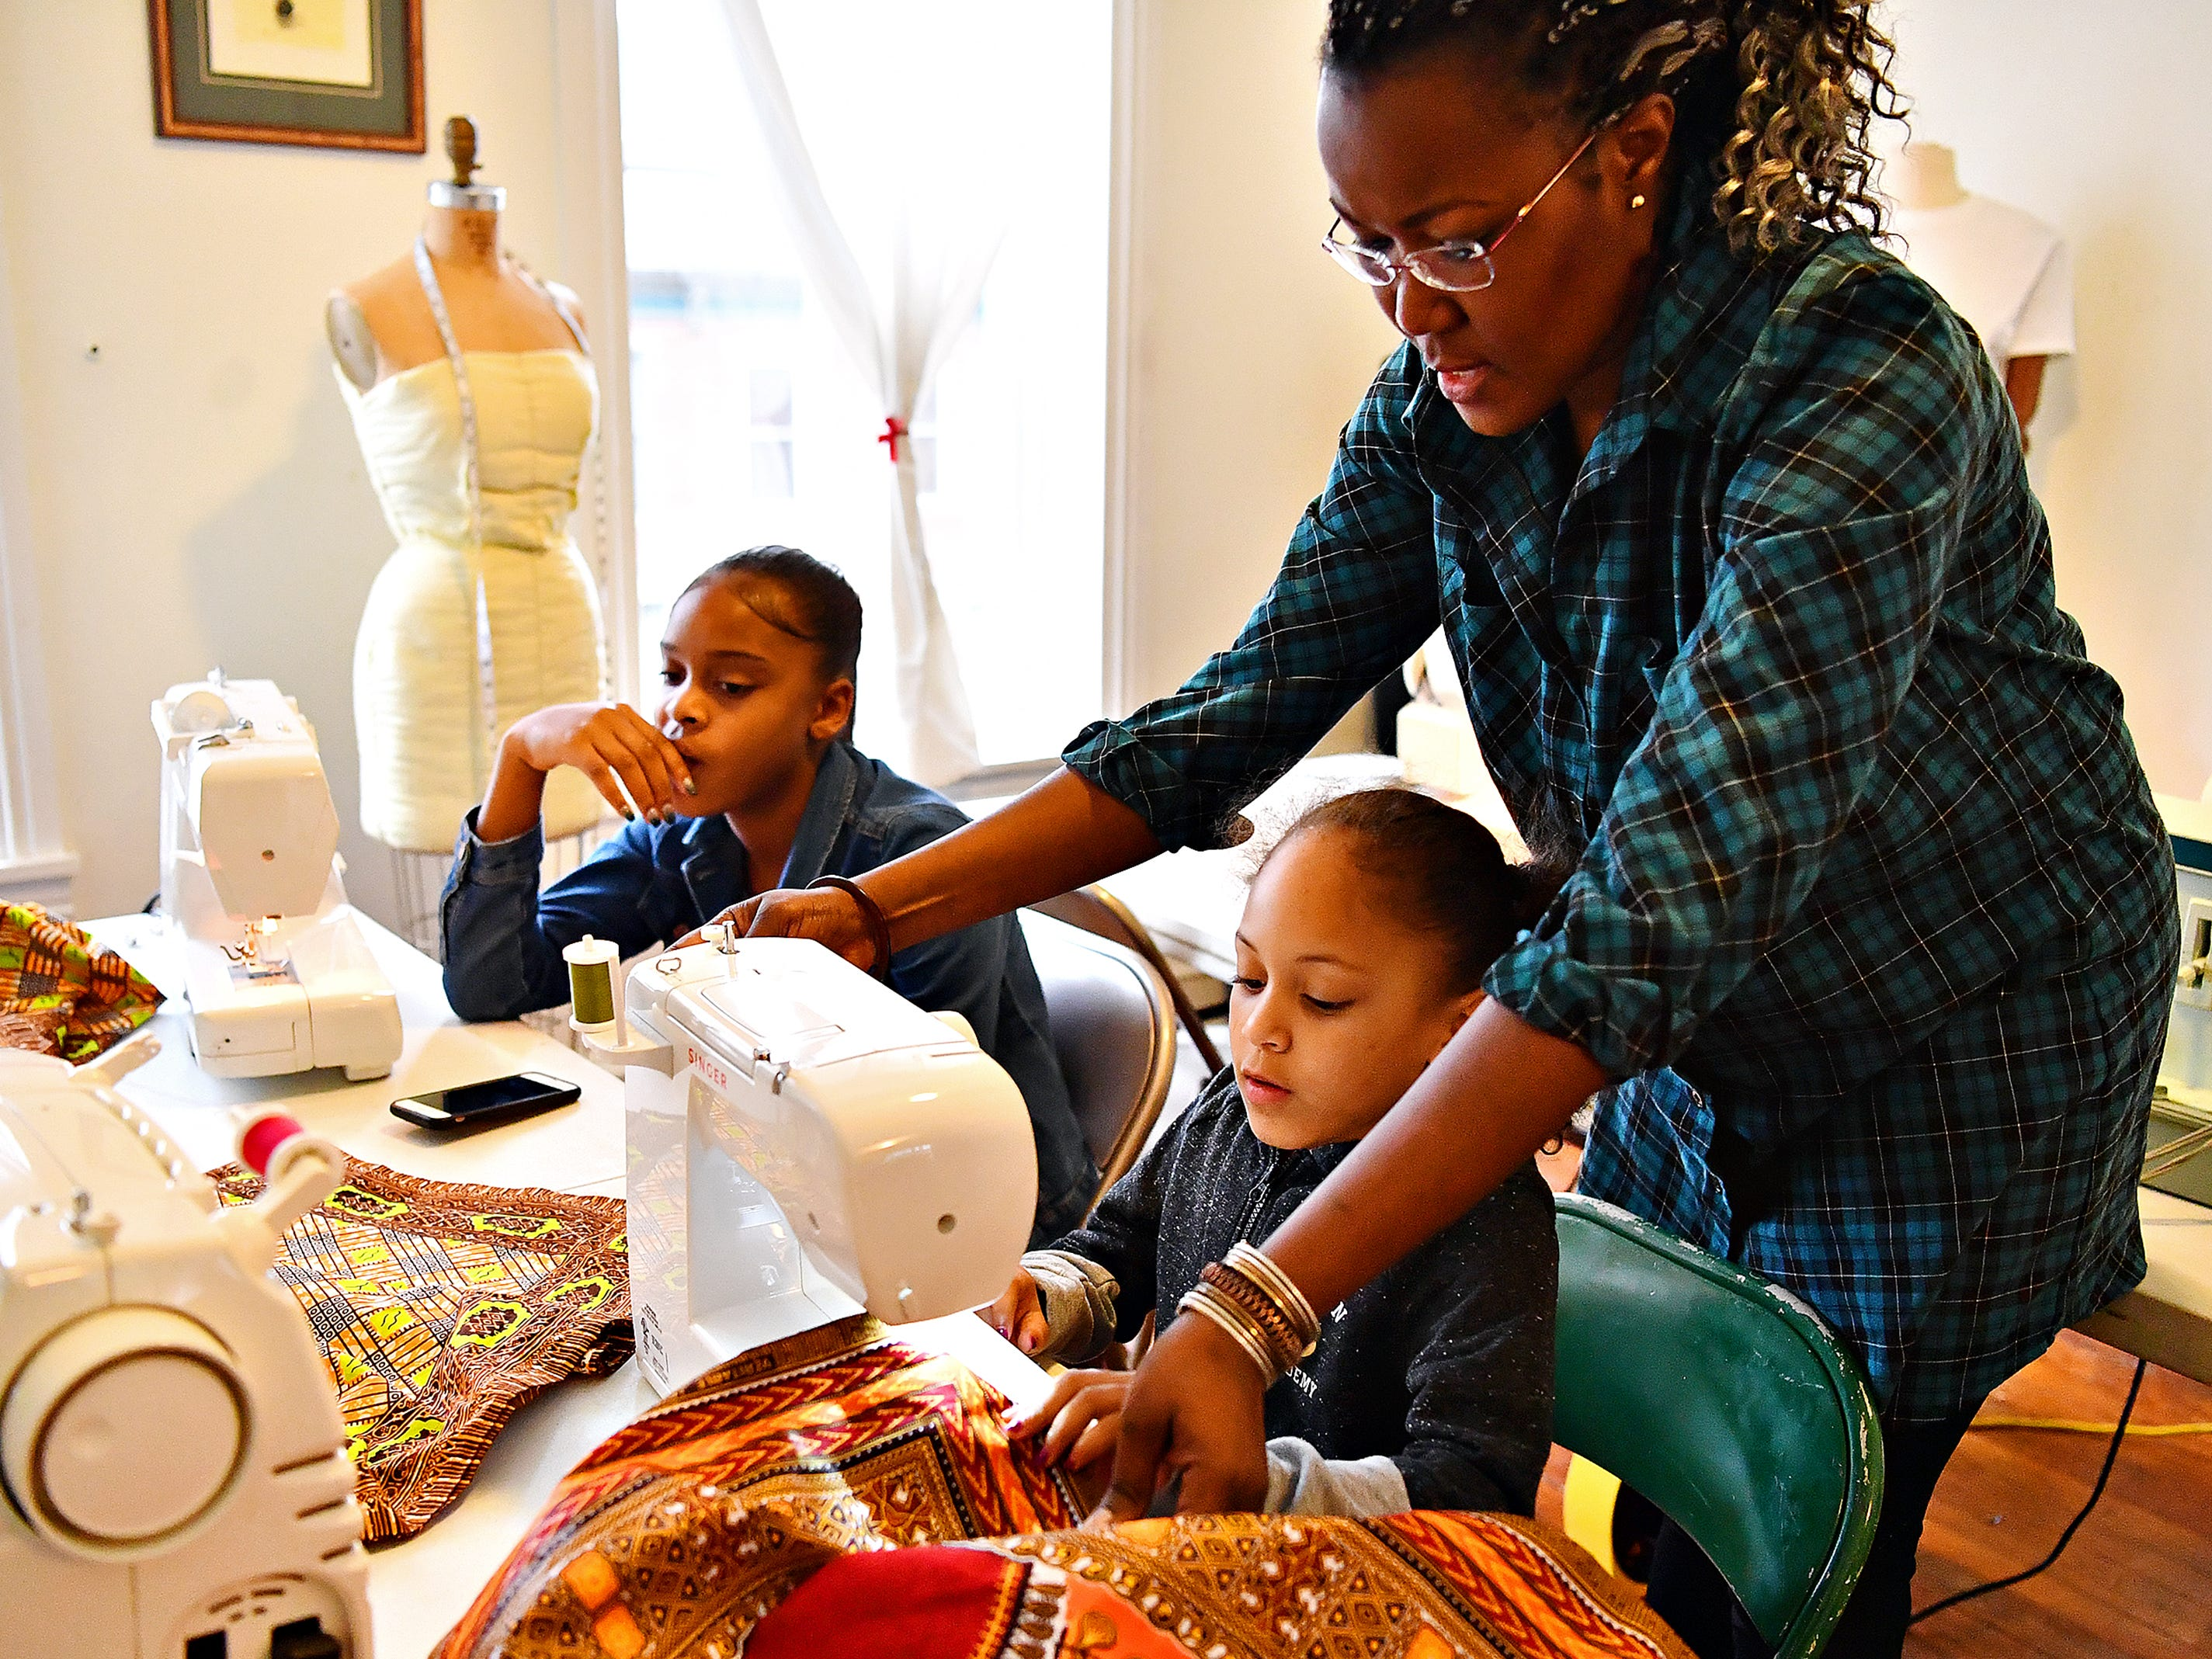 From right, Victoria Kageni-Woodard, of Gusa by Victoria, oversees a sewing project being worked on by Jalaya Williams, 6, while her sister Mikya Holley, 11, both of York City, looks on during a sewing workshop at her store in York City, Saturday, Jan. 5, 2019. Dawn J. Sagert photo